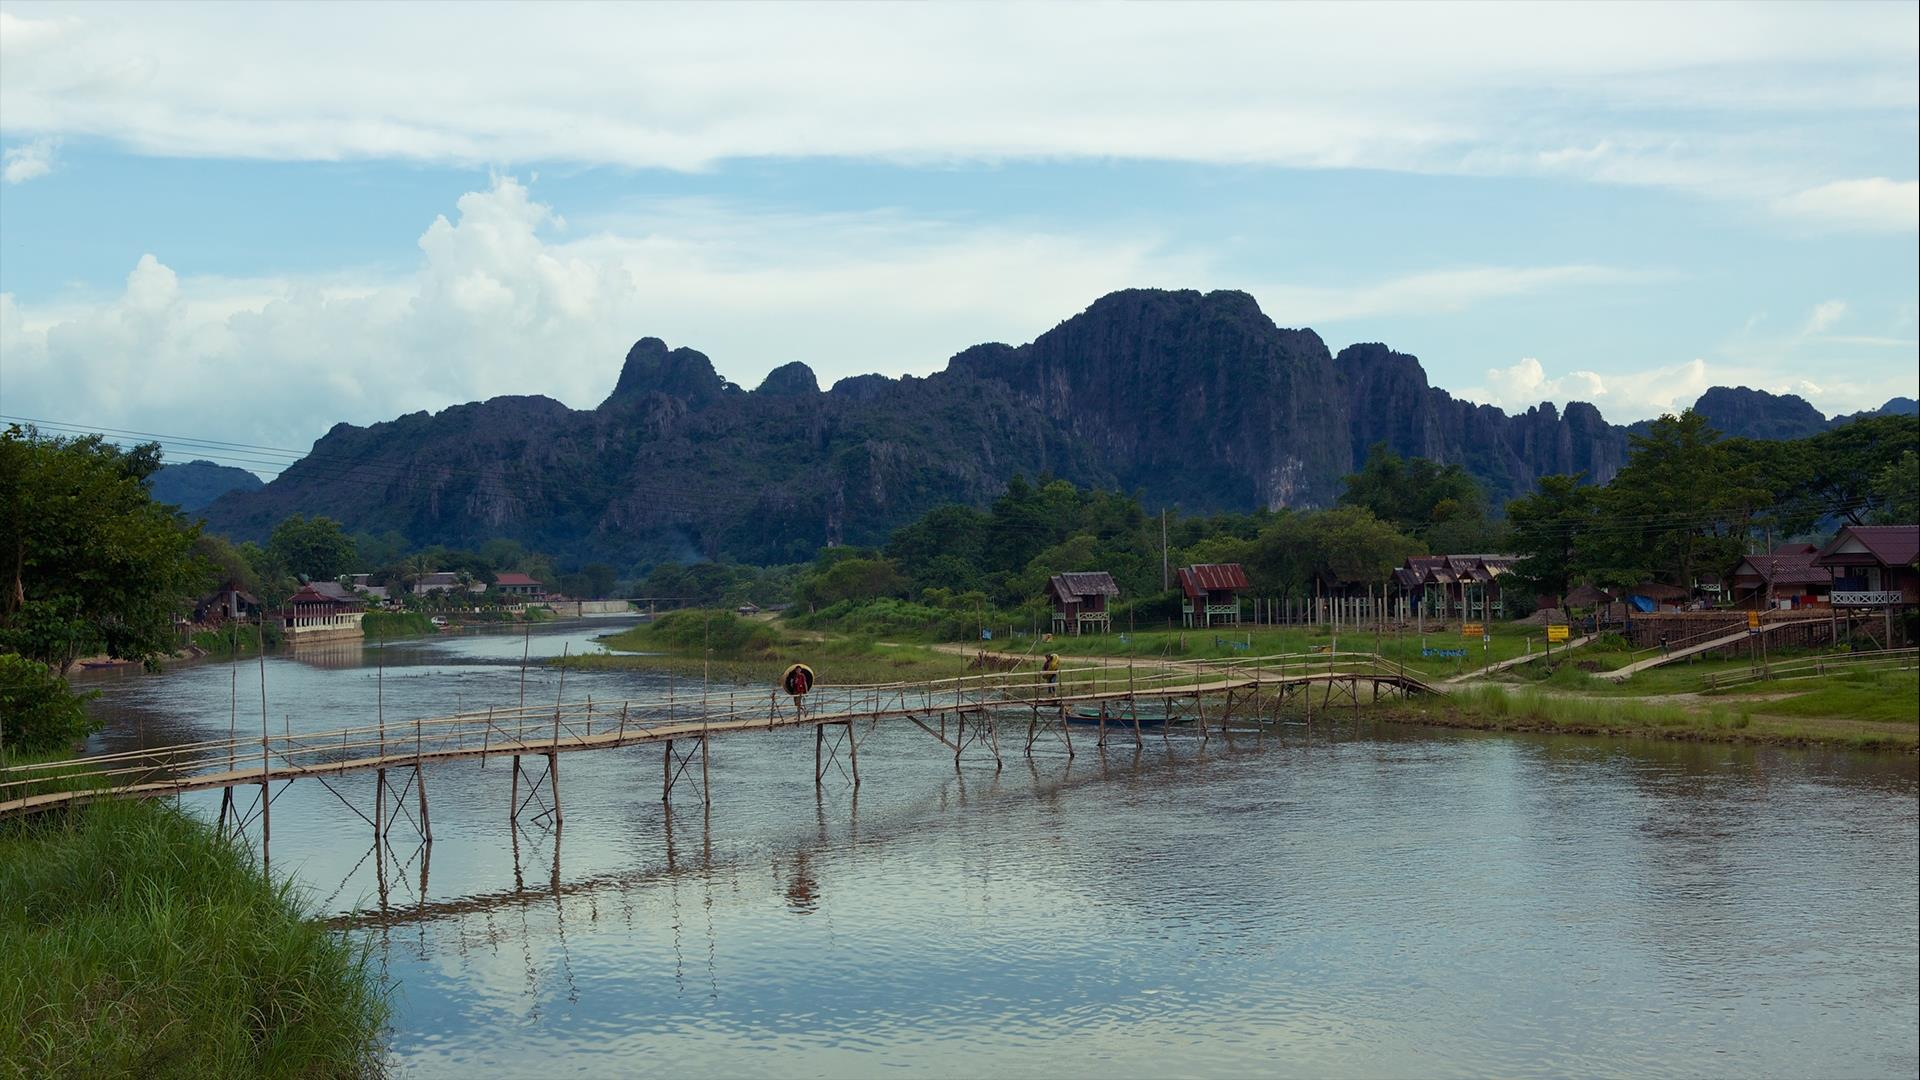 Laos, Vientiane, Vang Vieng, Luang Prabang:  Overland Cities & Mountains - 3 Days | Laos Scenic Ride